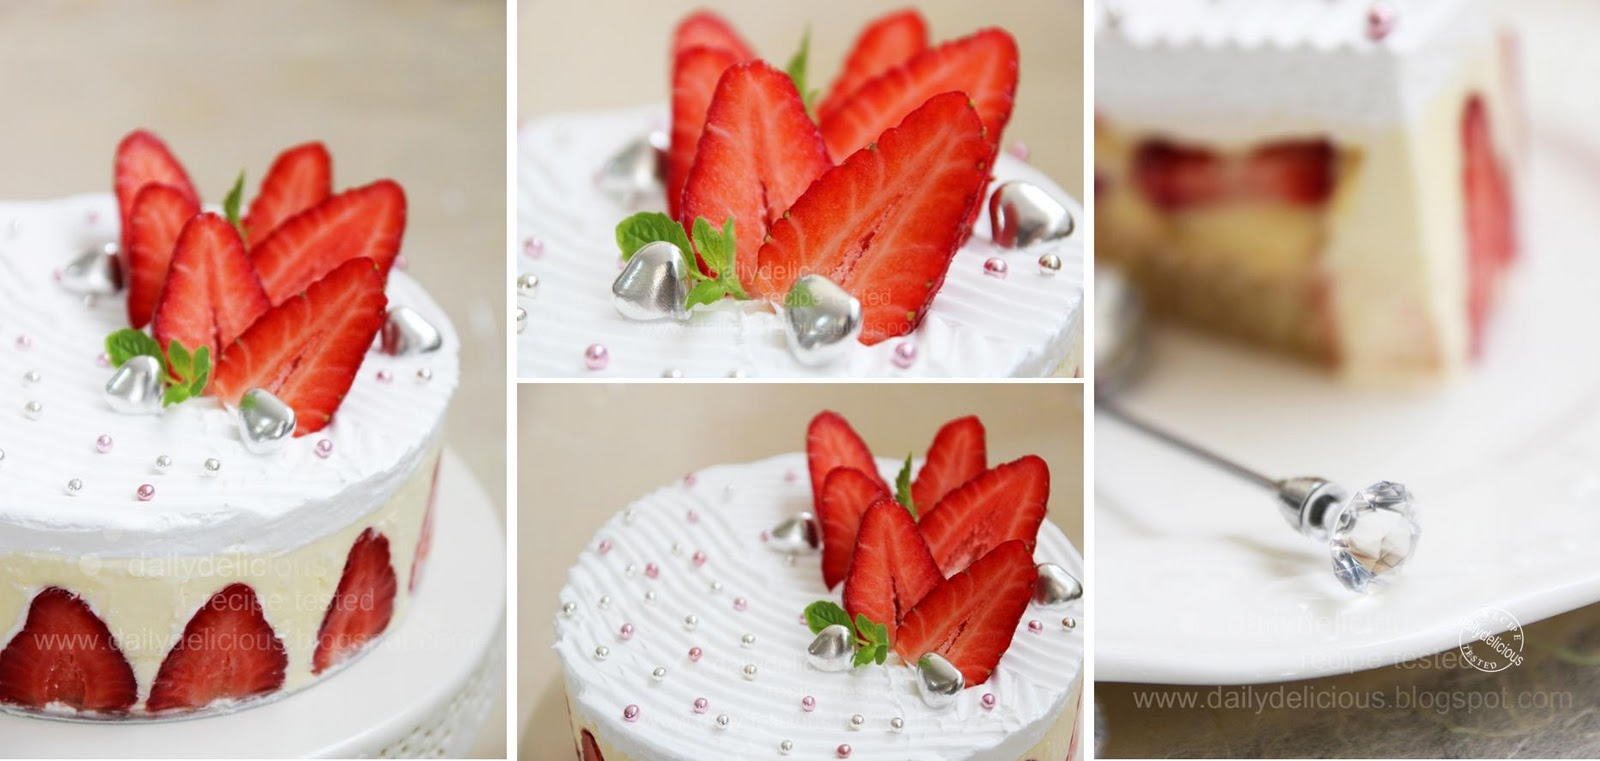 Recipe For Strawberry Kit Kat Cake